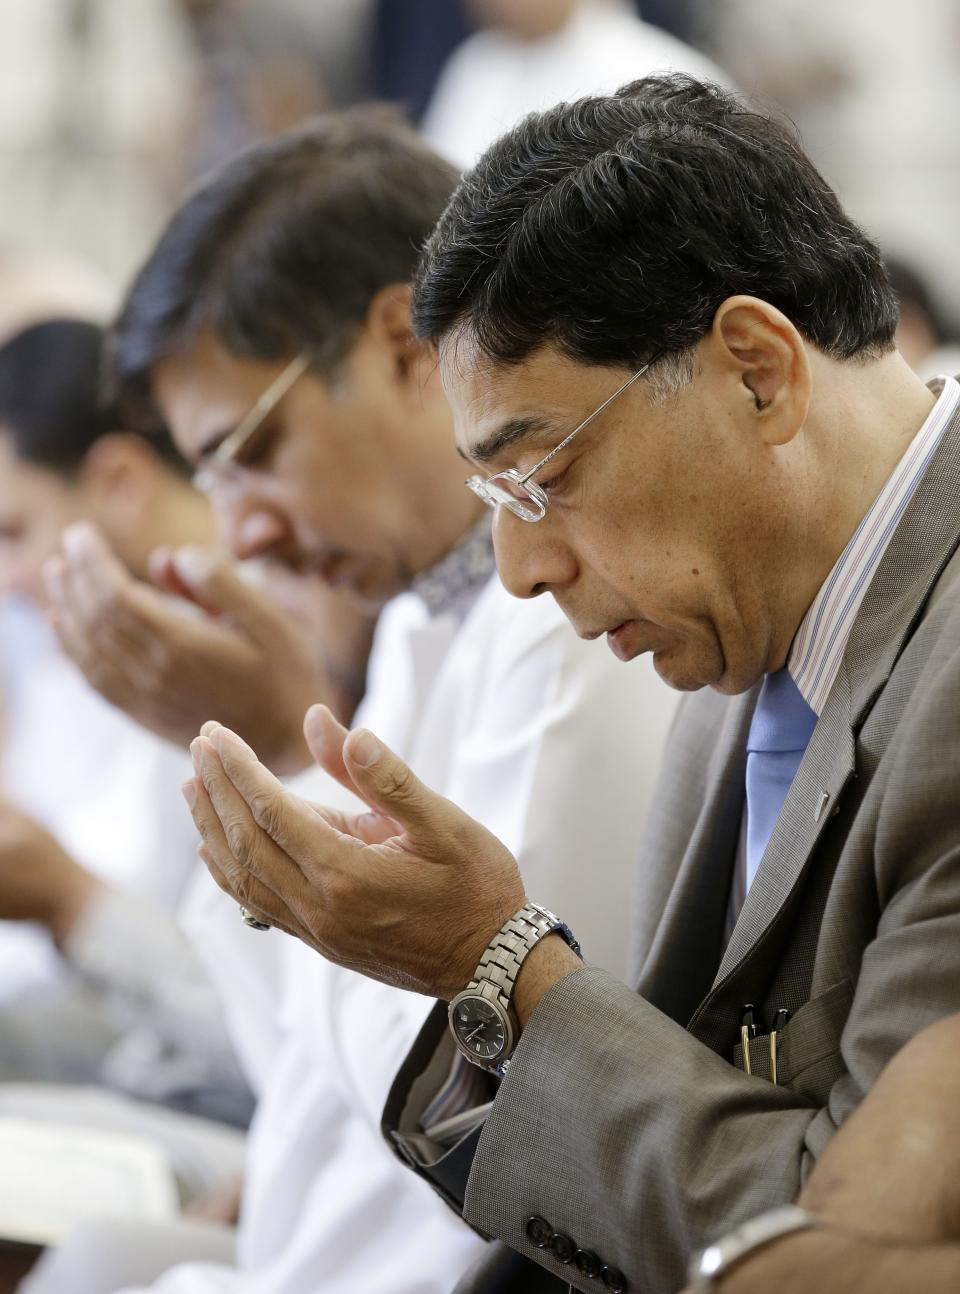 Wasim Qureshi, right, and his brother, Nadeem Qureshi, left, attend midday prayers at the Islamic Center of Murfreesboro on Friday, Aug. 10, 2012, in Murfreesboro, Tenn. Opponents of  the mosque waged a two-year court battle trying to keep it from opening. (AP Photo/Mark Humphrey)